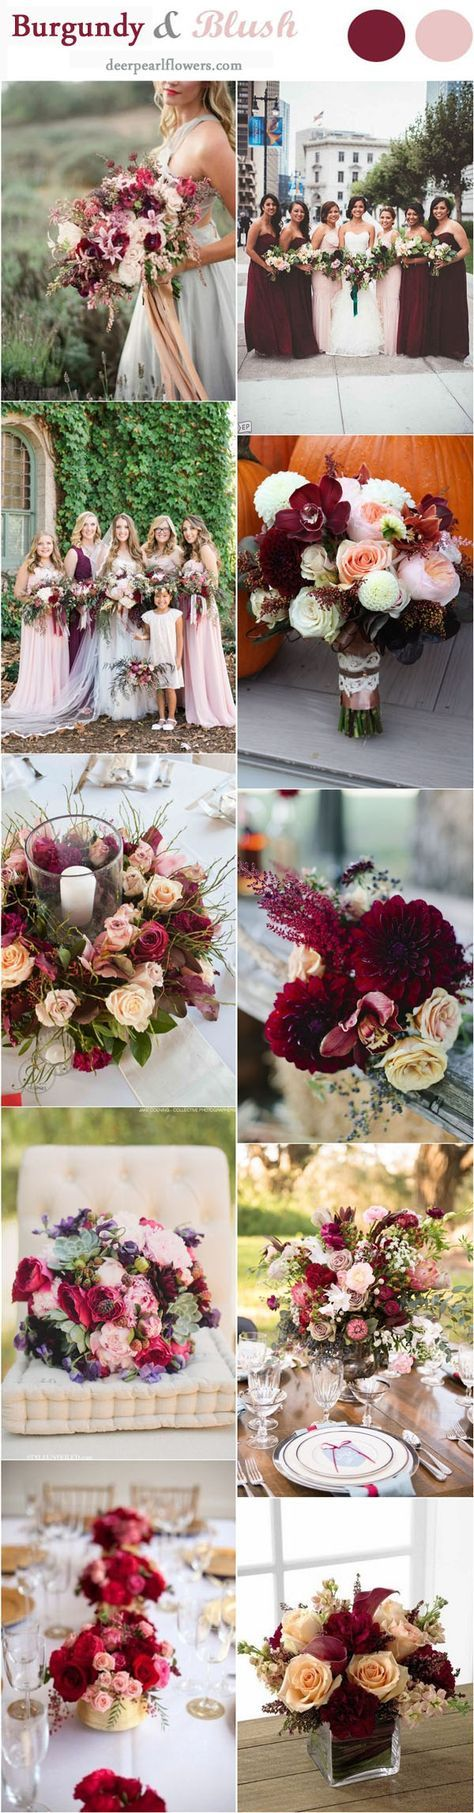 Blush and Burgundy Fall Wedding Ideas / http://www.deerpearlflowers.com/burgundy-and-blush-fall-wedding-ideas/